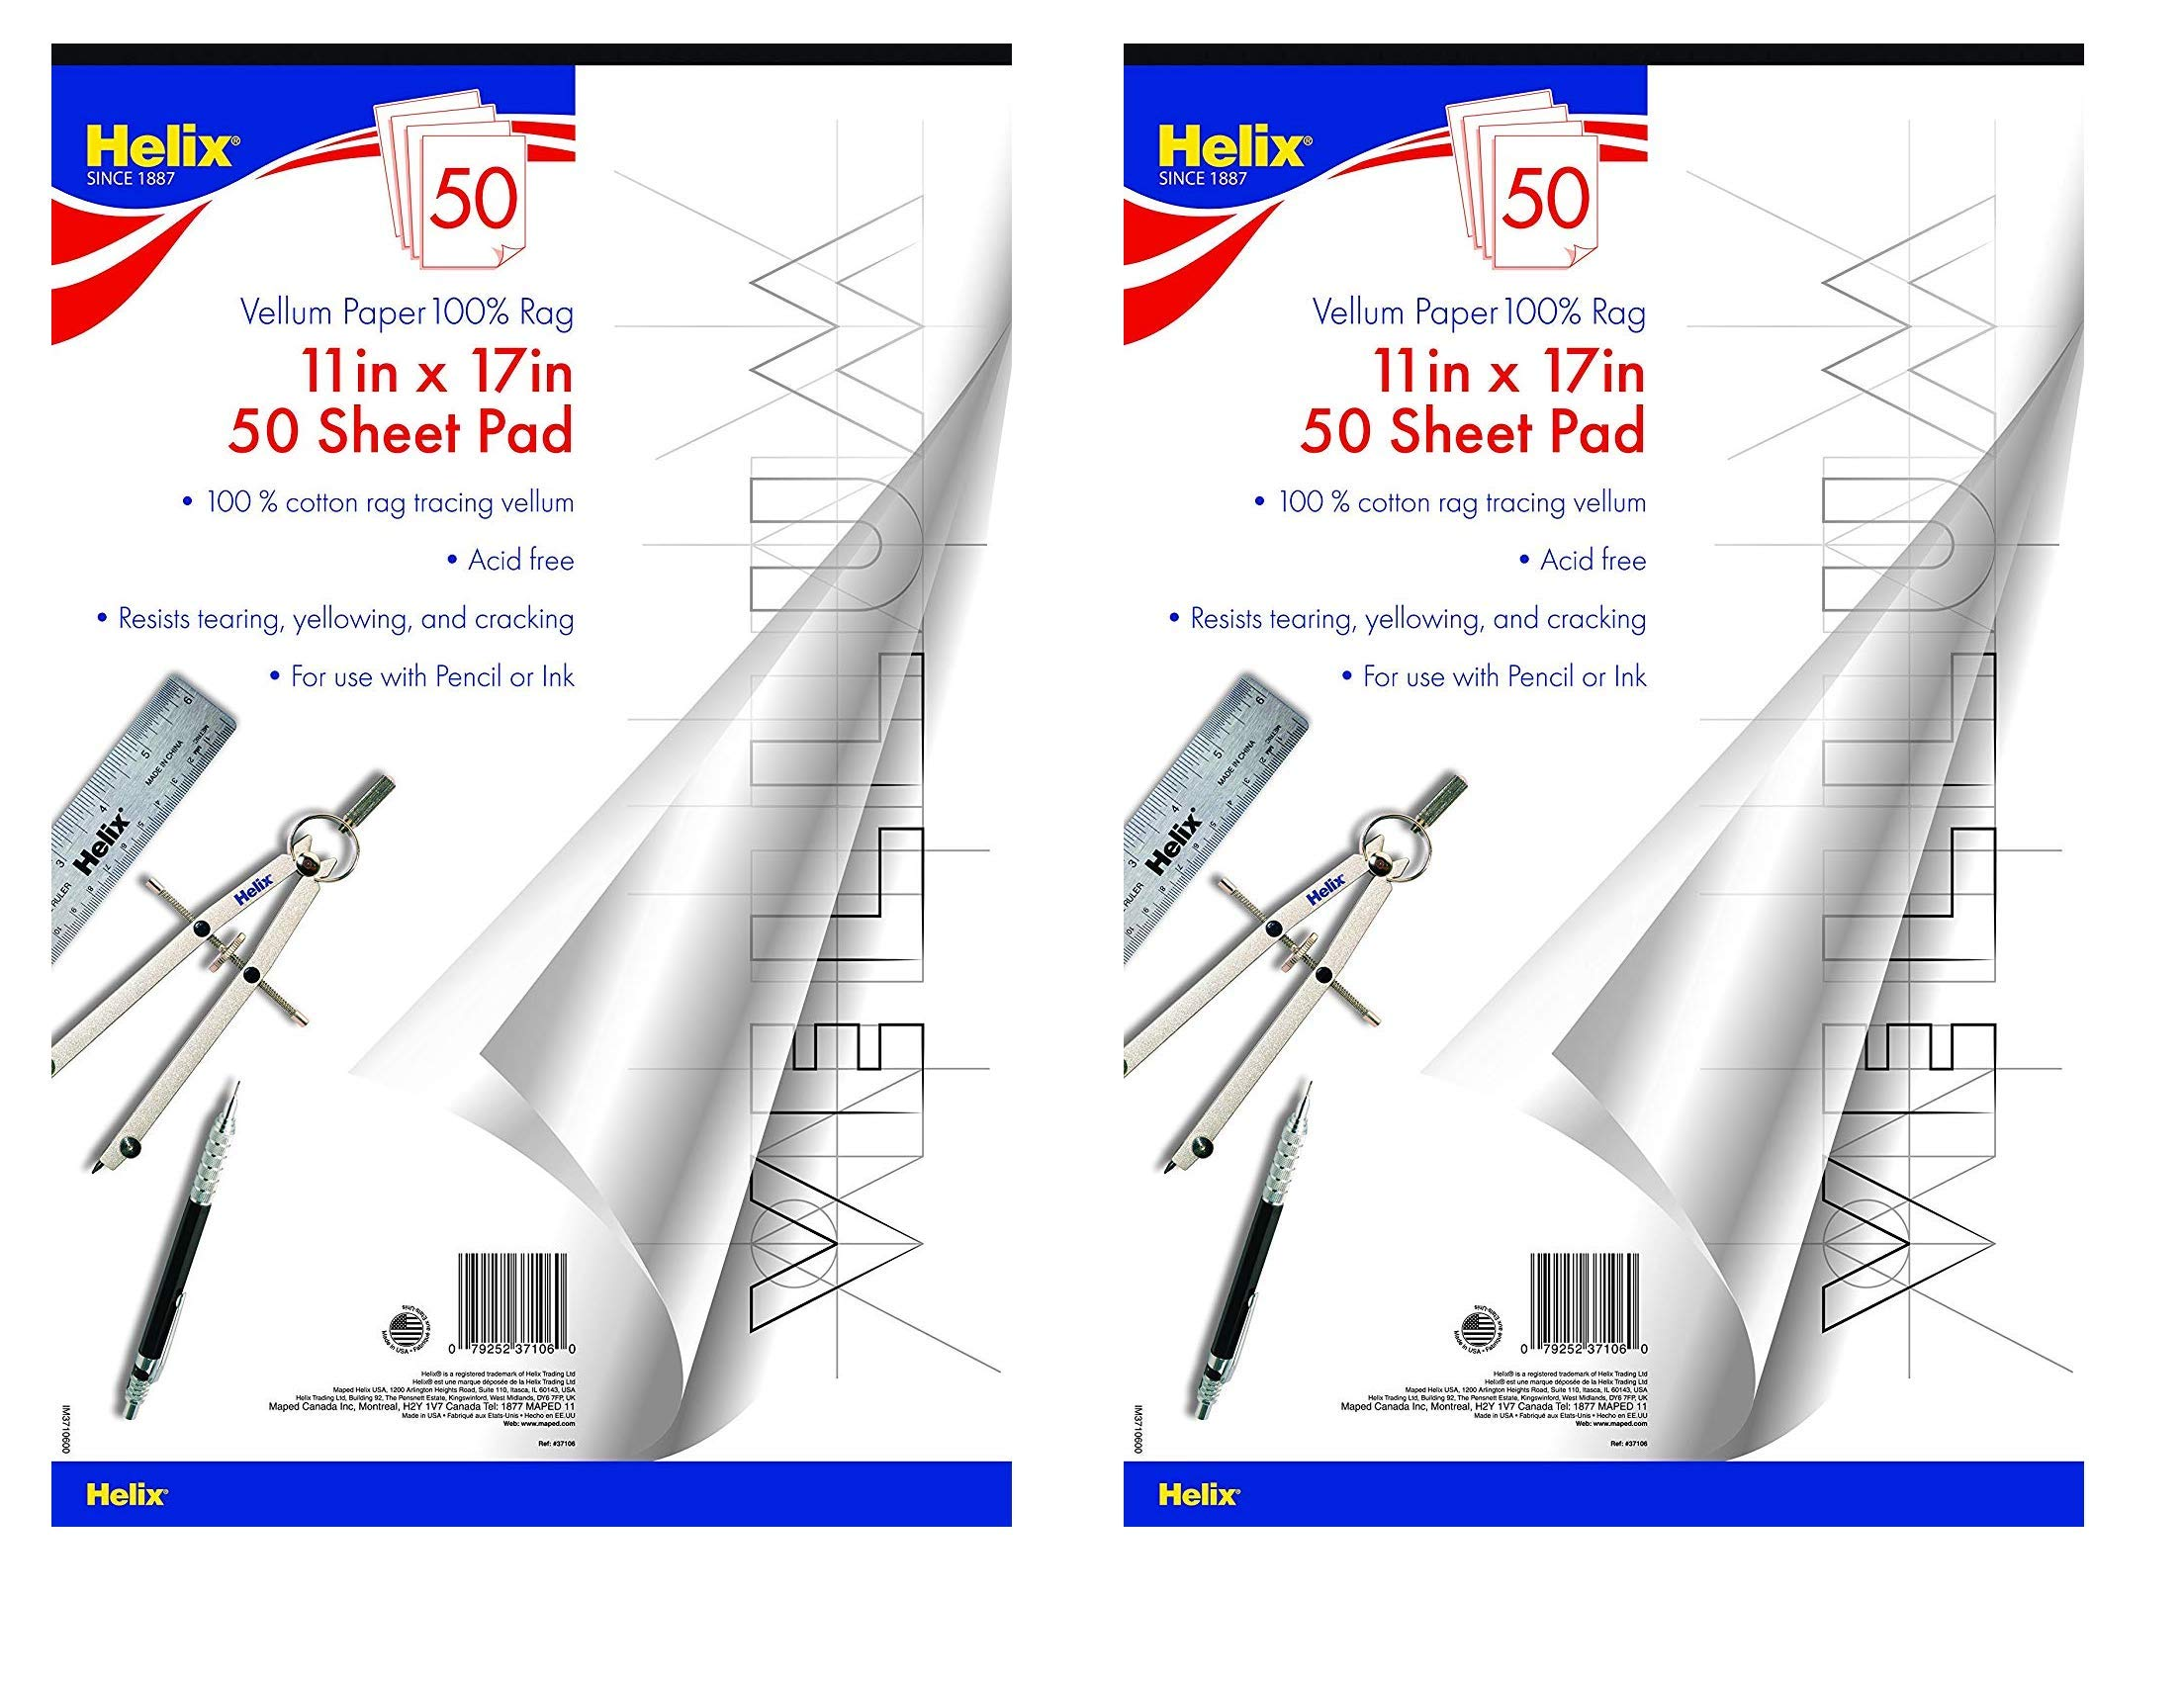 Helix Vellum Paper Pad, 100% Rag, 11 x 17 inch, 50 Sheets (37106) (2-Pack) by Maped Helix USA